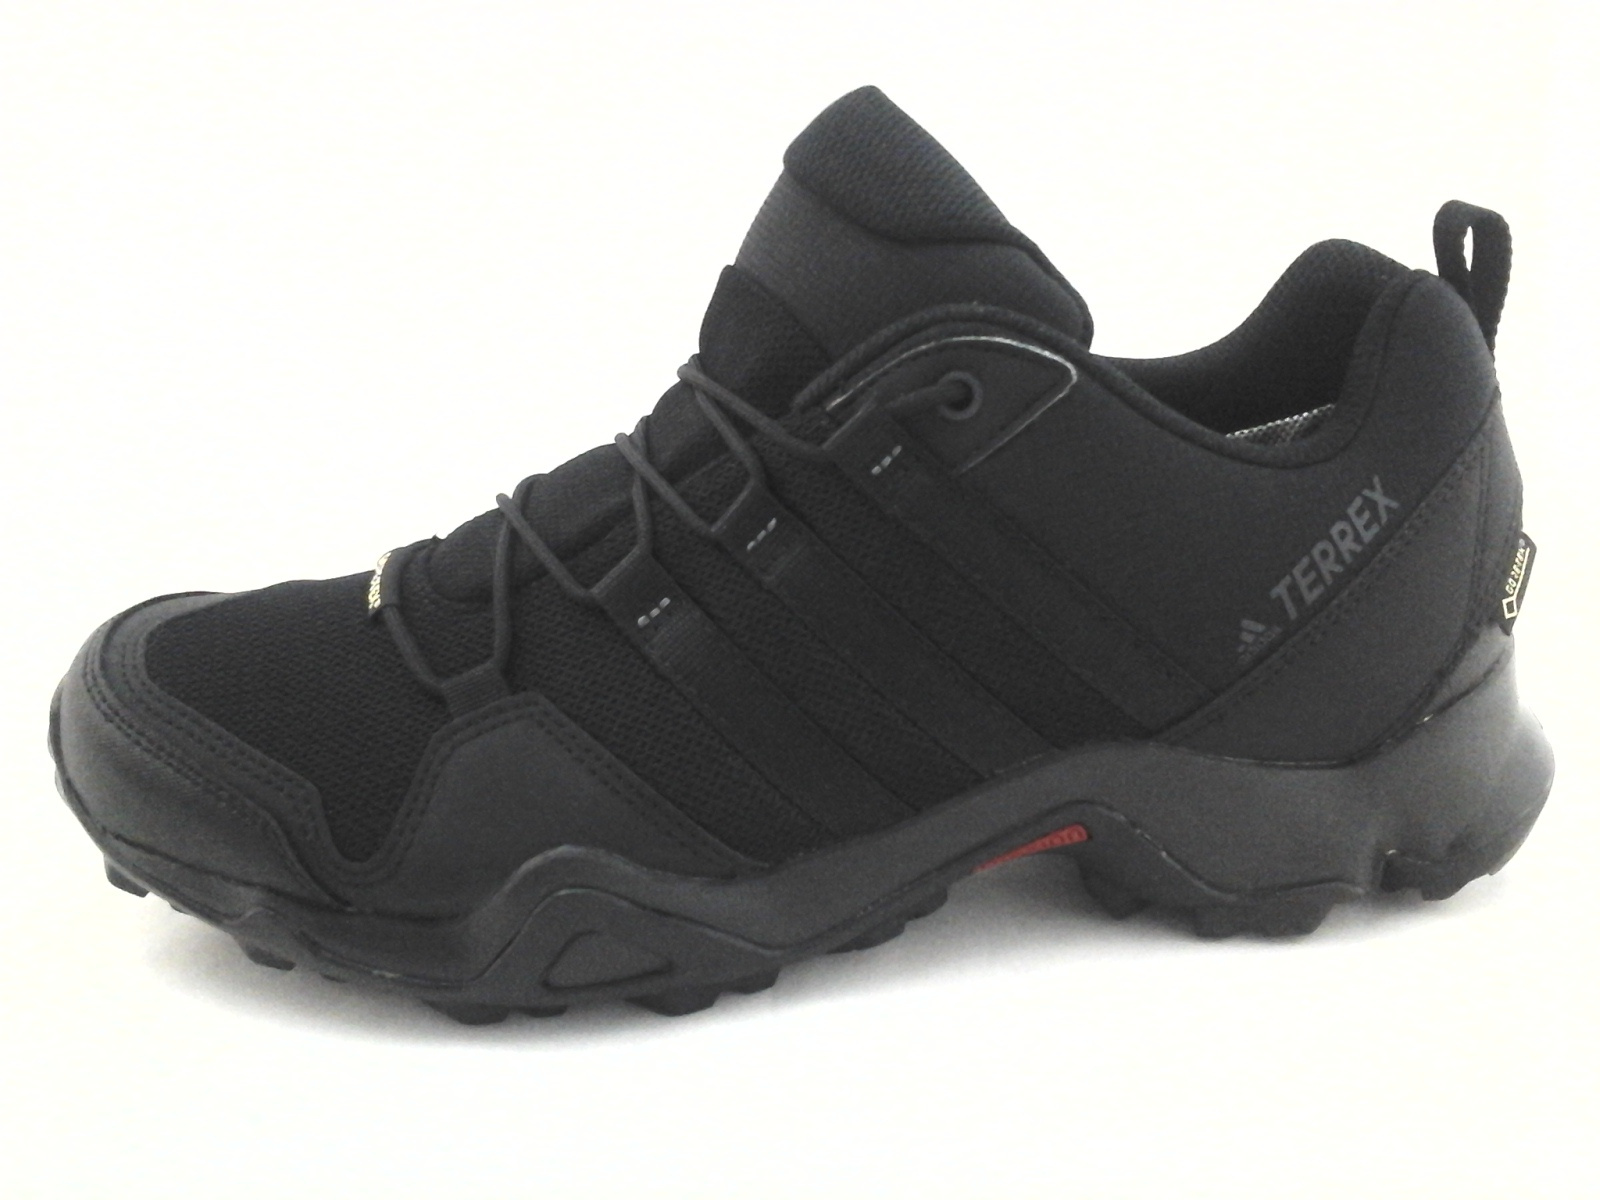 ADIDAS Terrex Hiking Shoes AX2R GTX Black H2O Resistant Outdoor CM7715  130  New 3e5a3d408